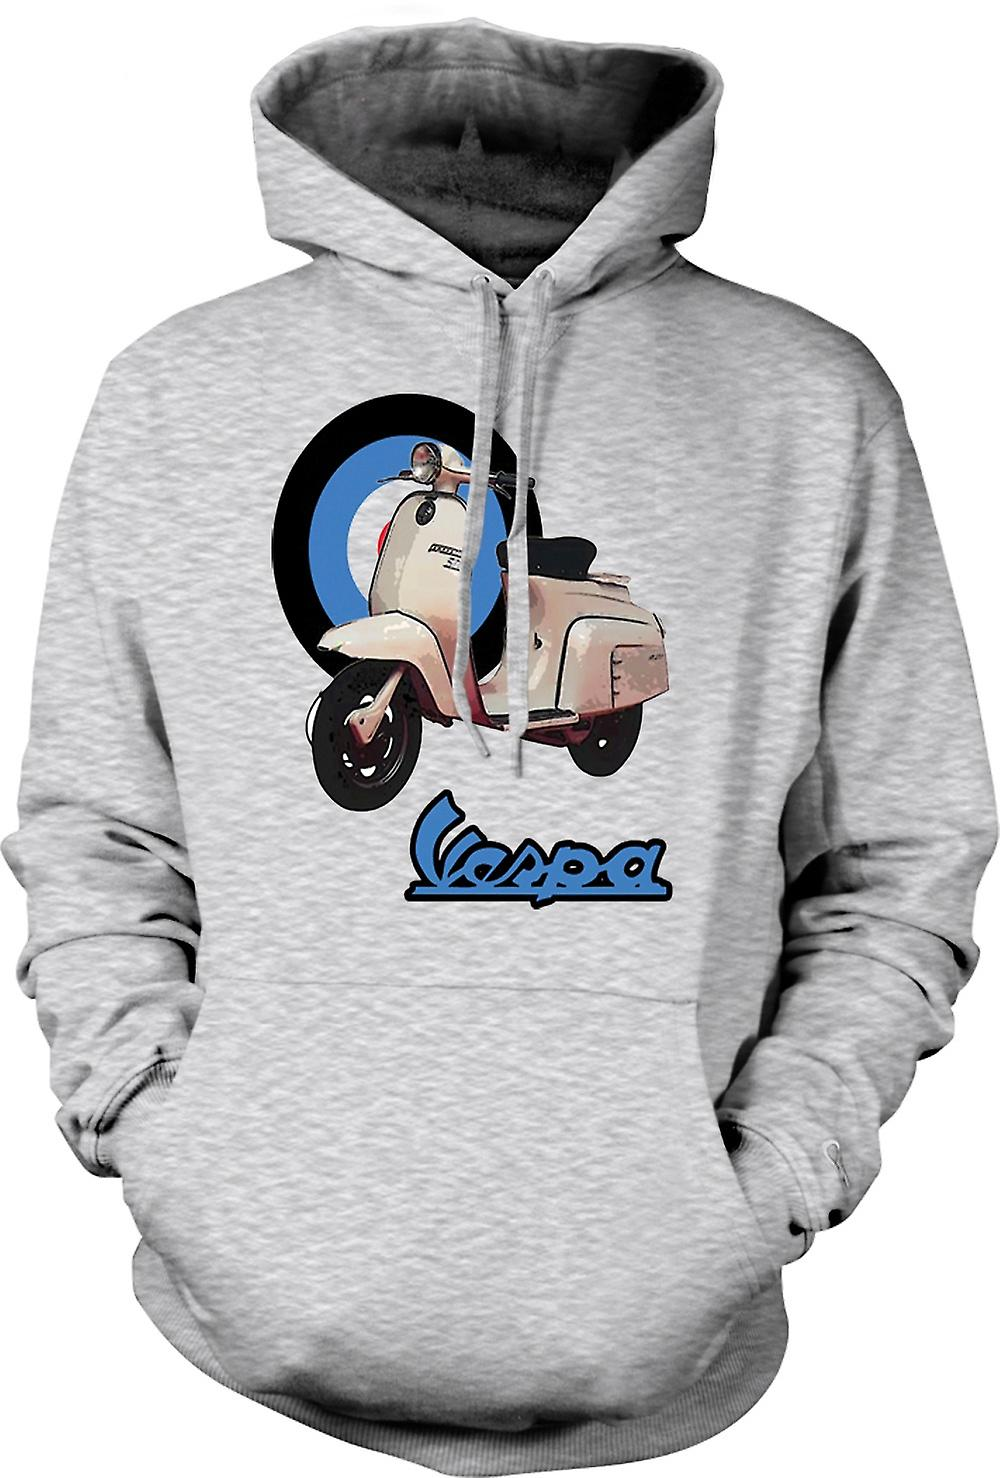 Mens Hoodie - Vespa - British Flag - Mod - Scooter